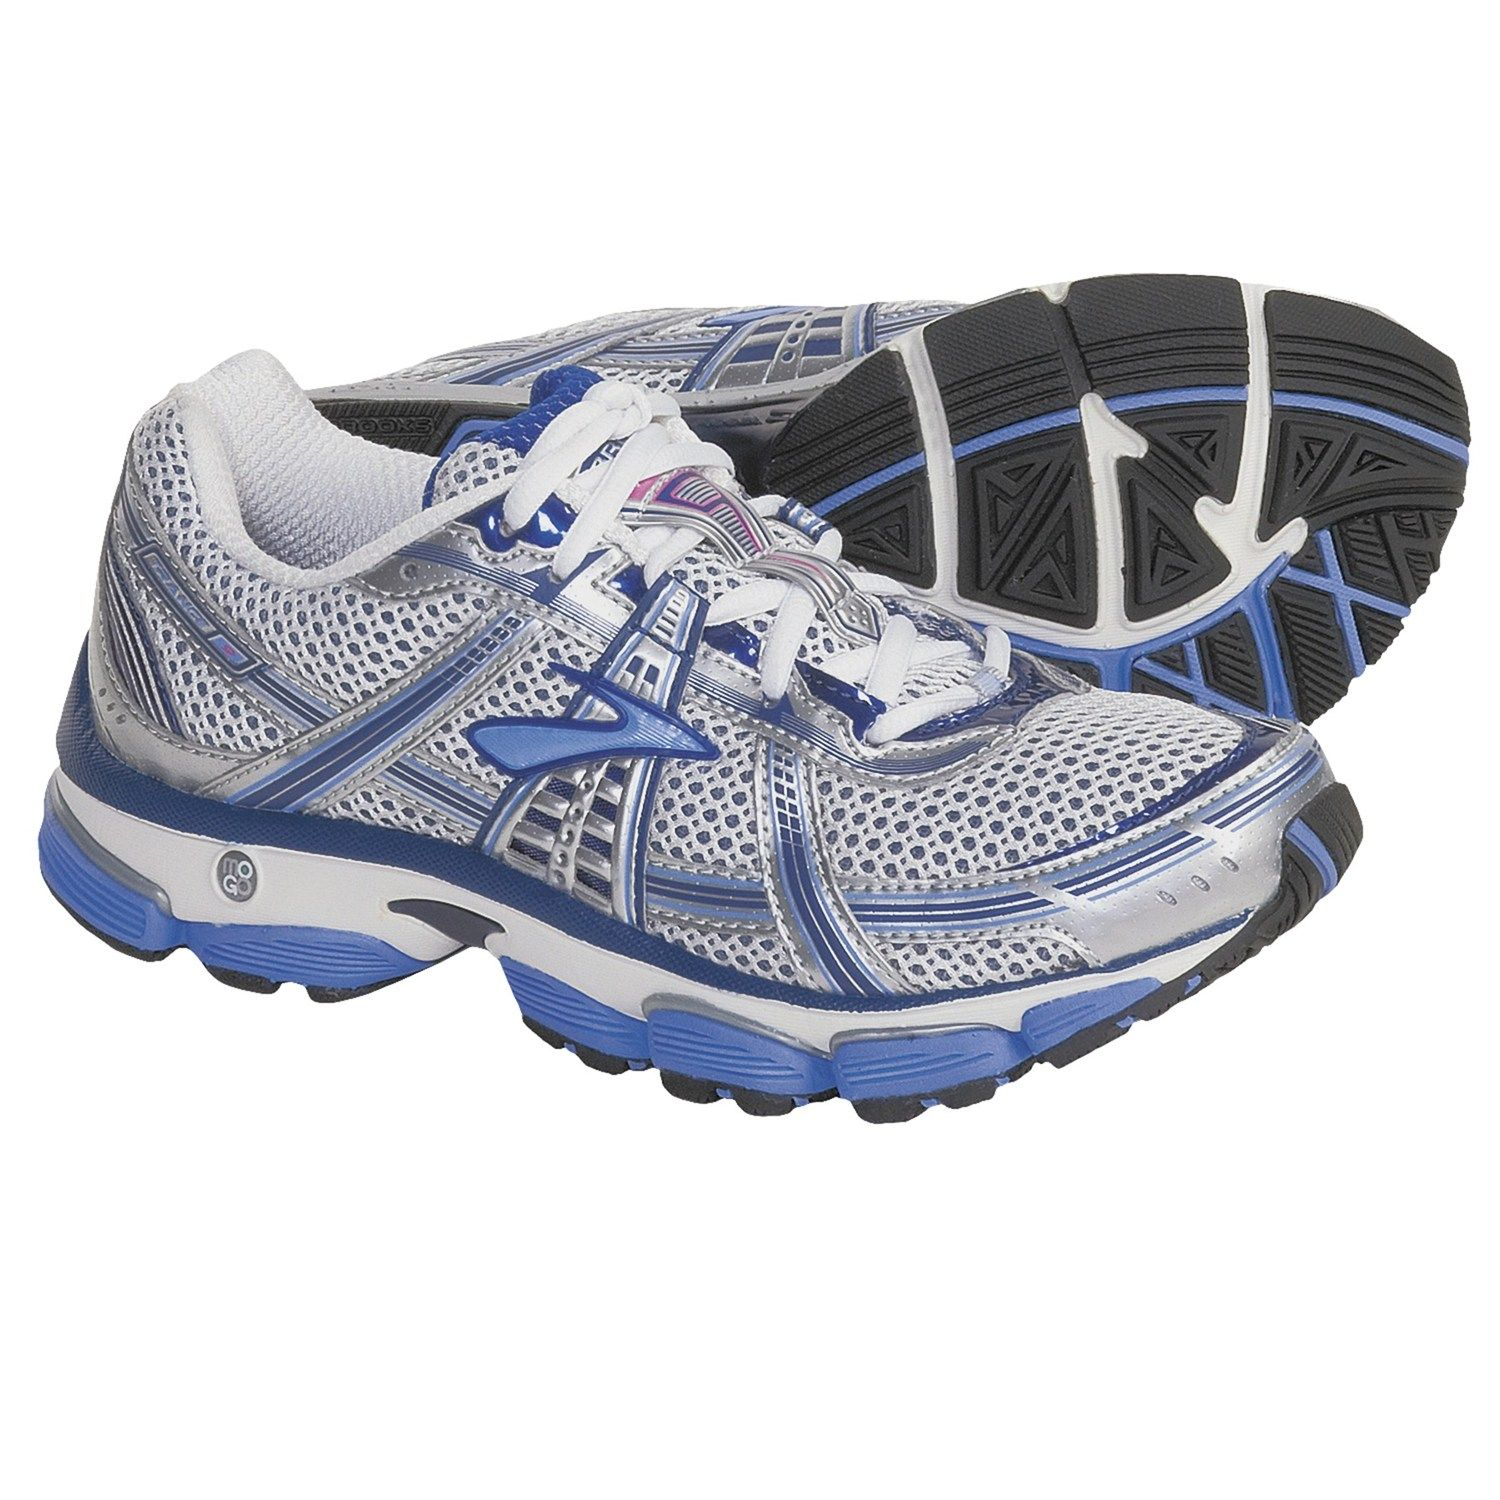 Brooks sneakers which i highly womens running